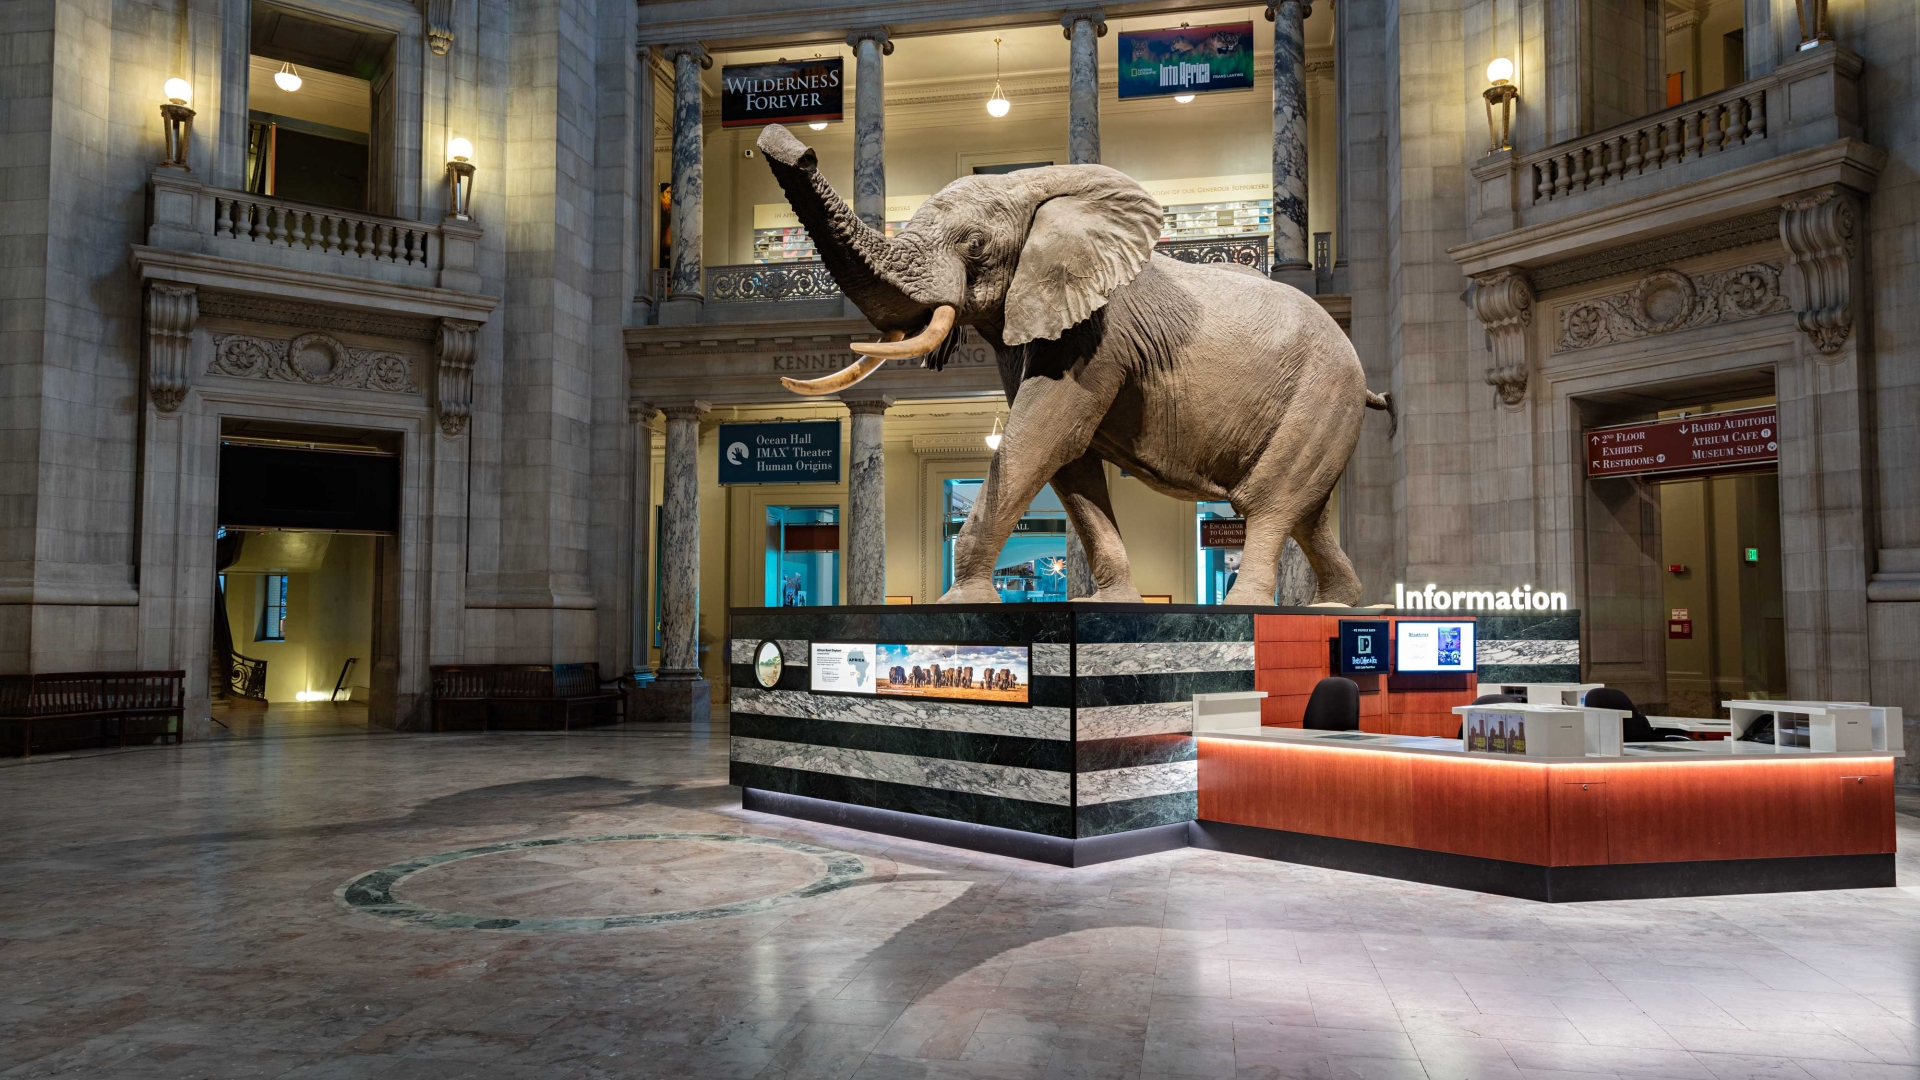 32 things to see on D C 's National Mall: The Smithsonian